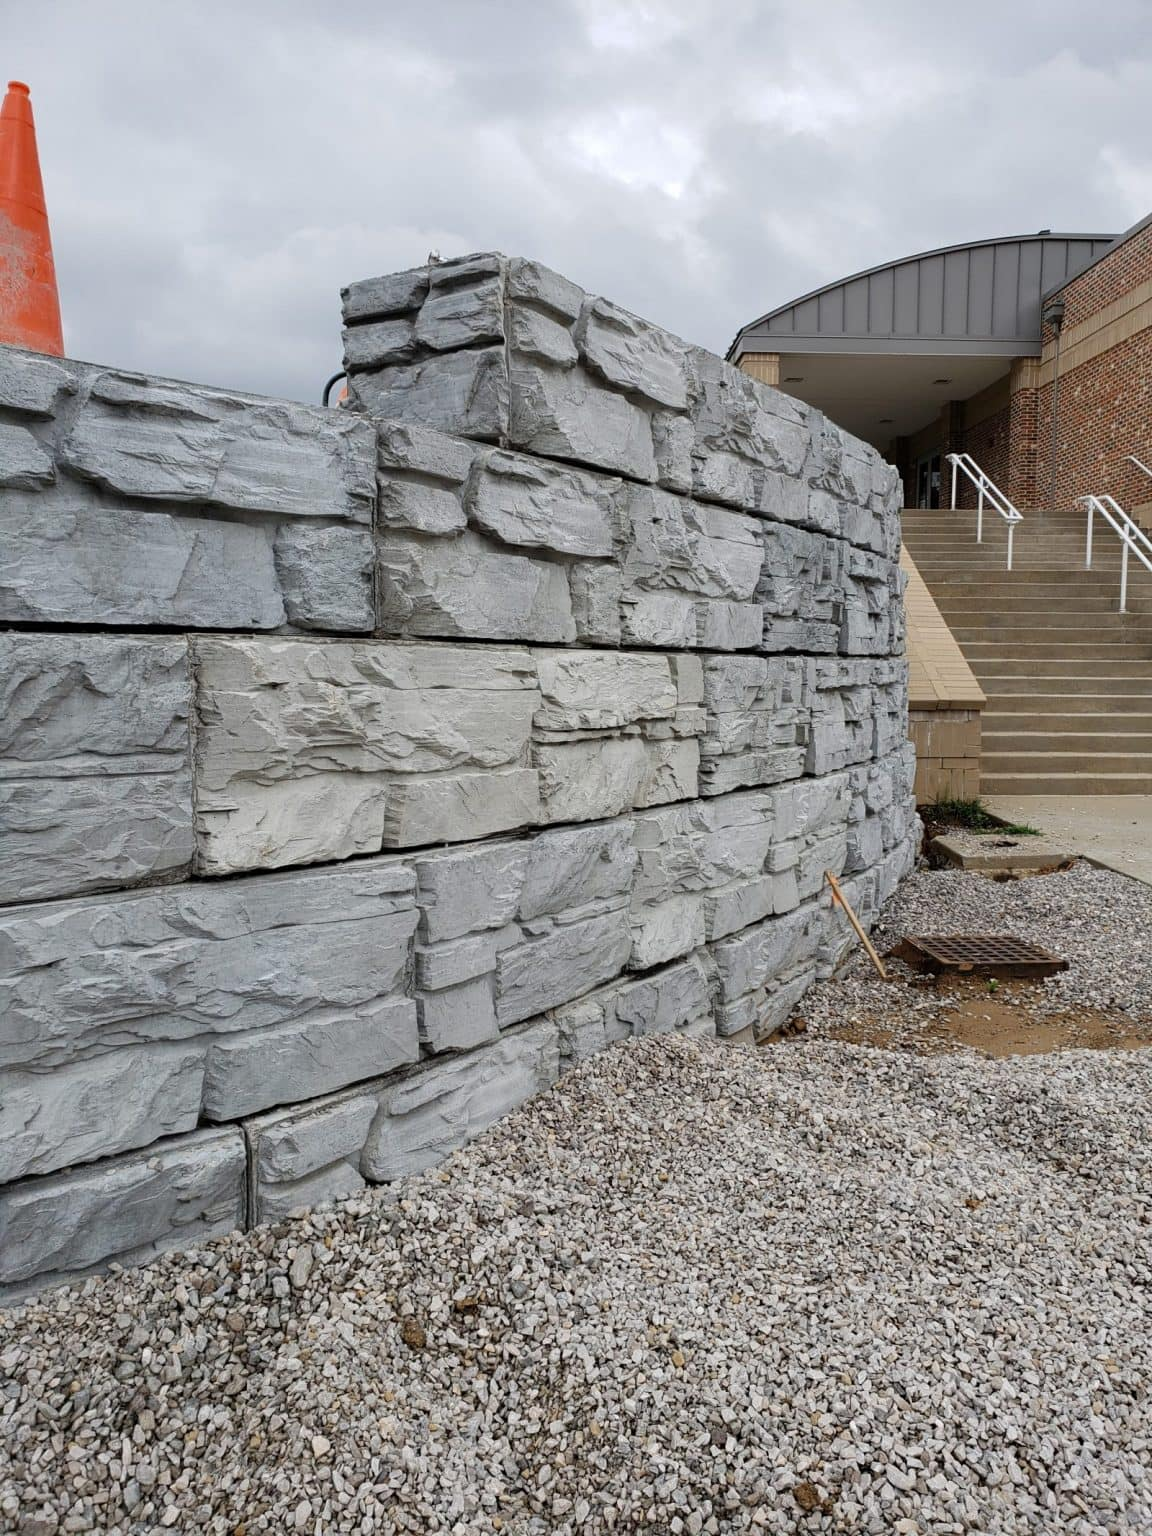 Curved MagnumStone wall with step-up feature at the top of the wall. Commercial retaining wall project.